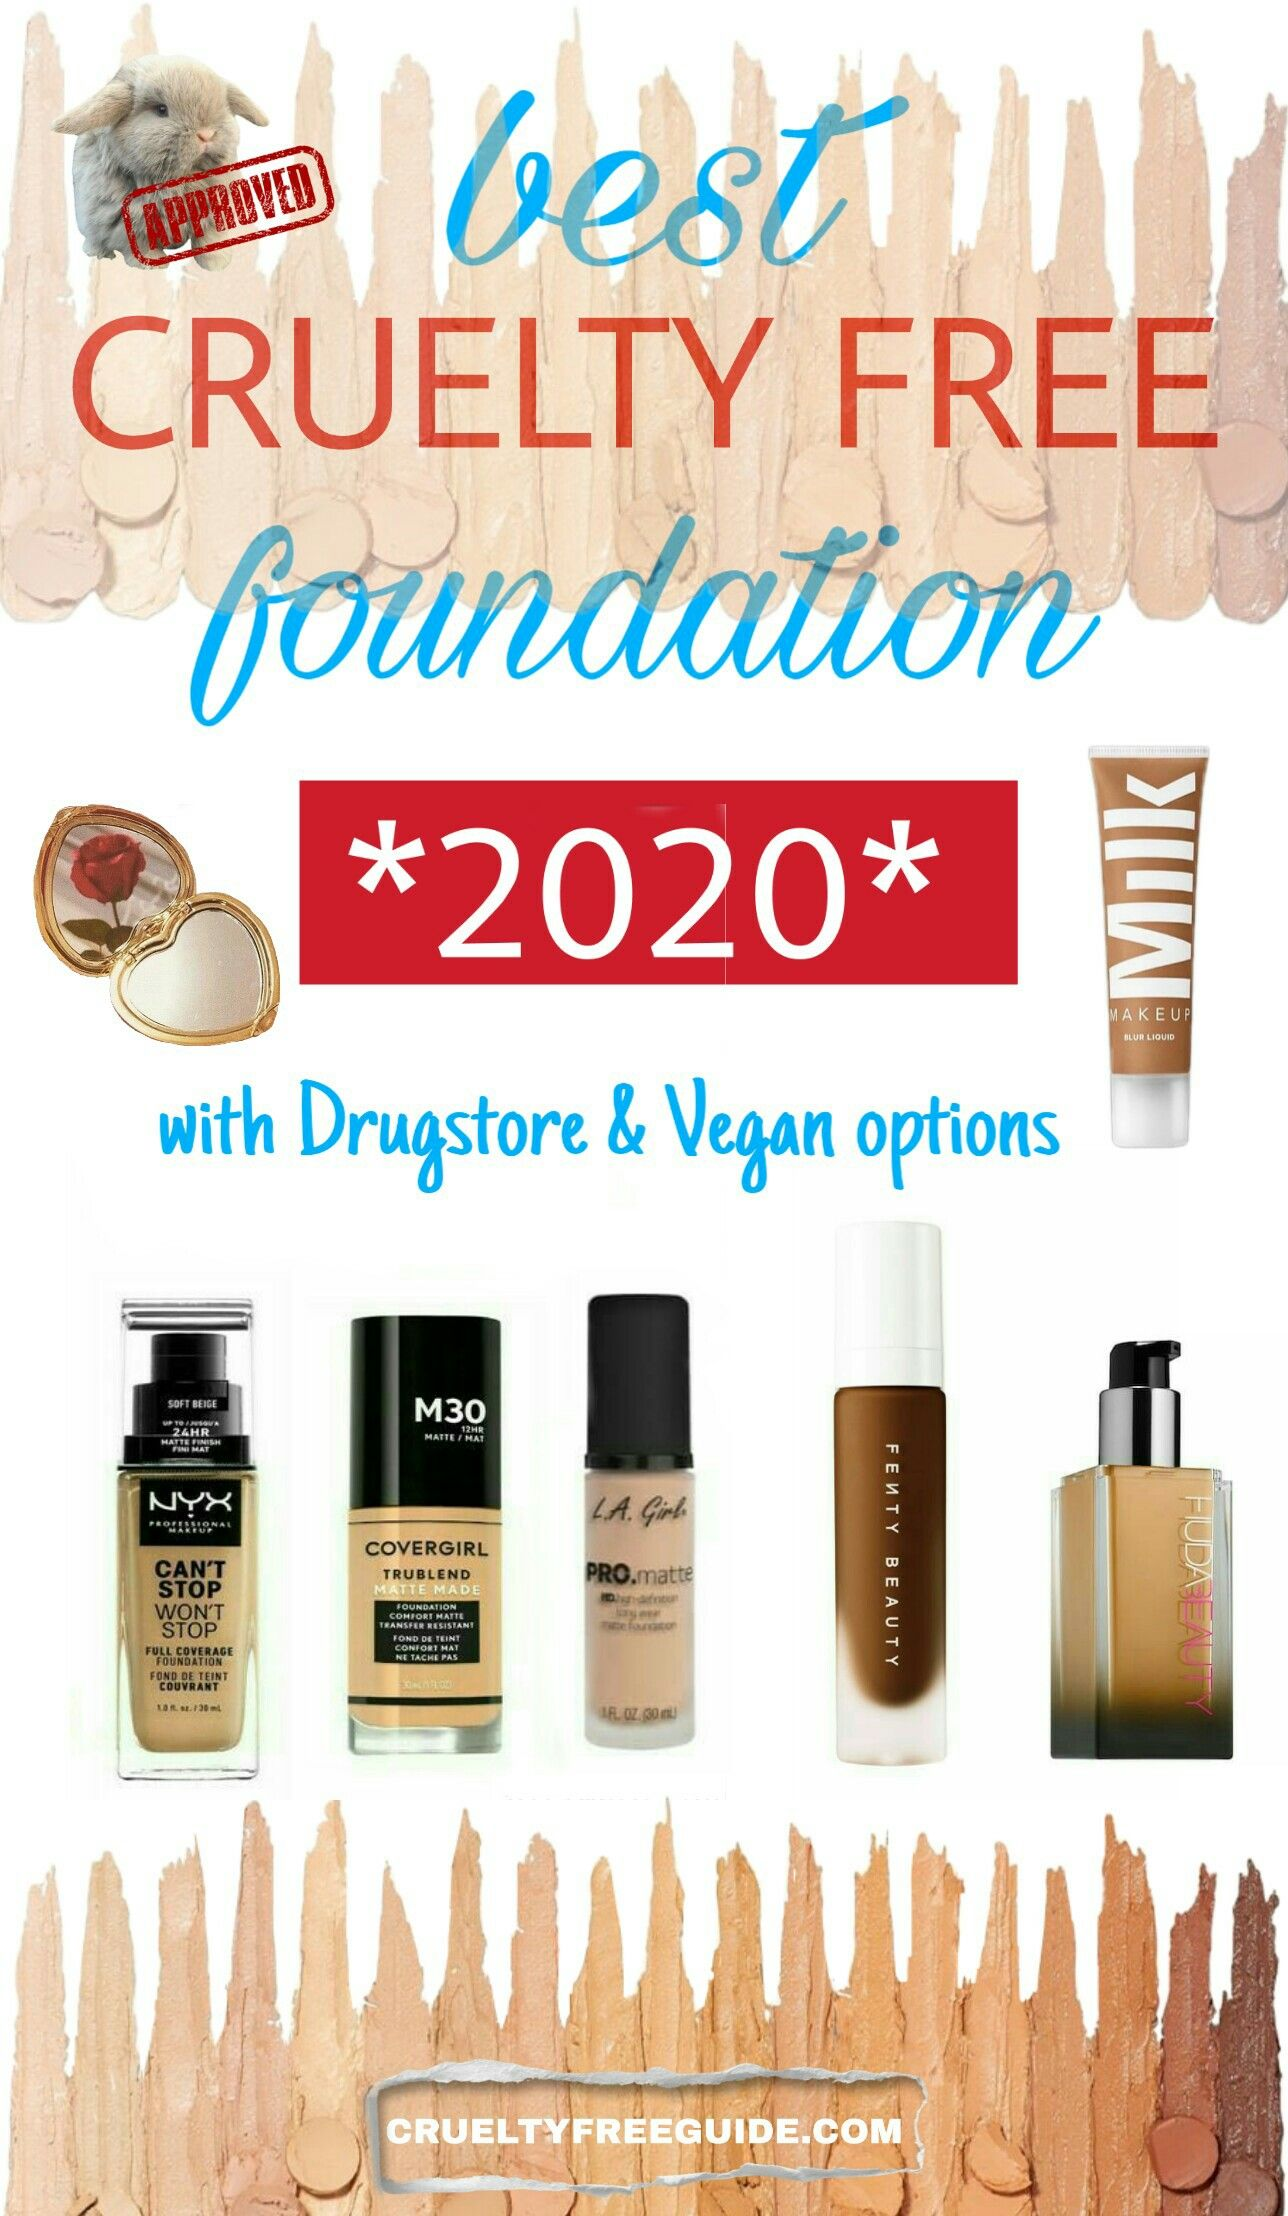 13 Amazing Drugstore Foundations That Are Cruelty Free